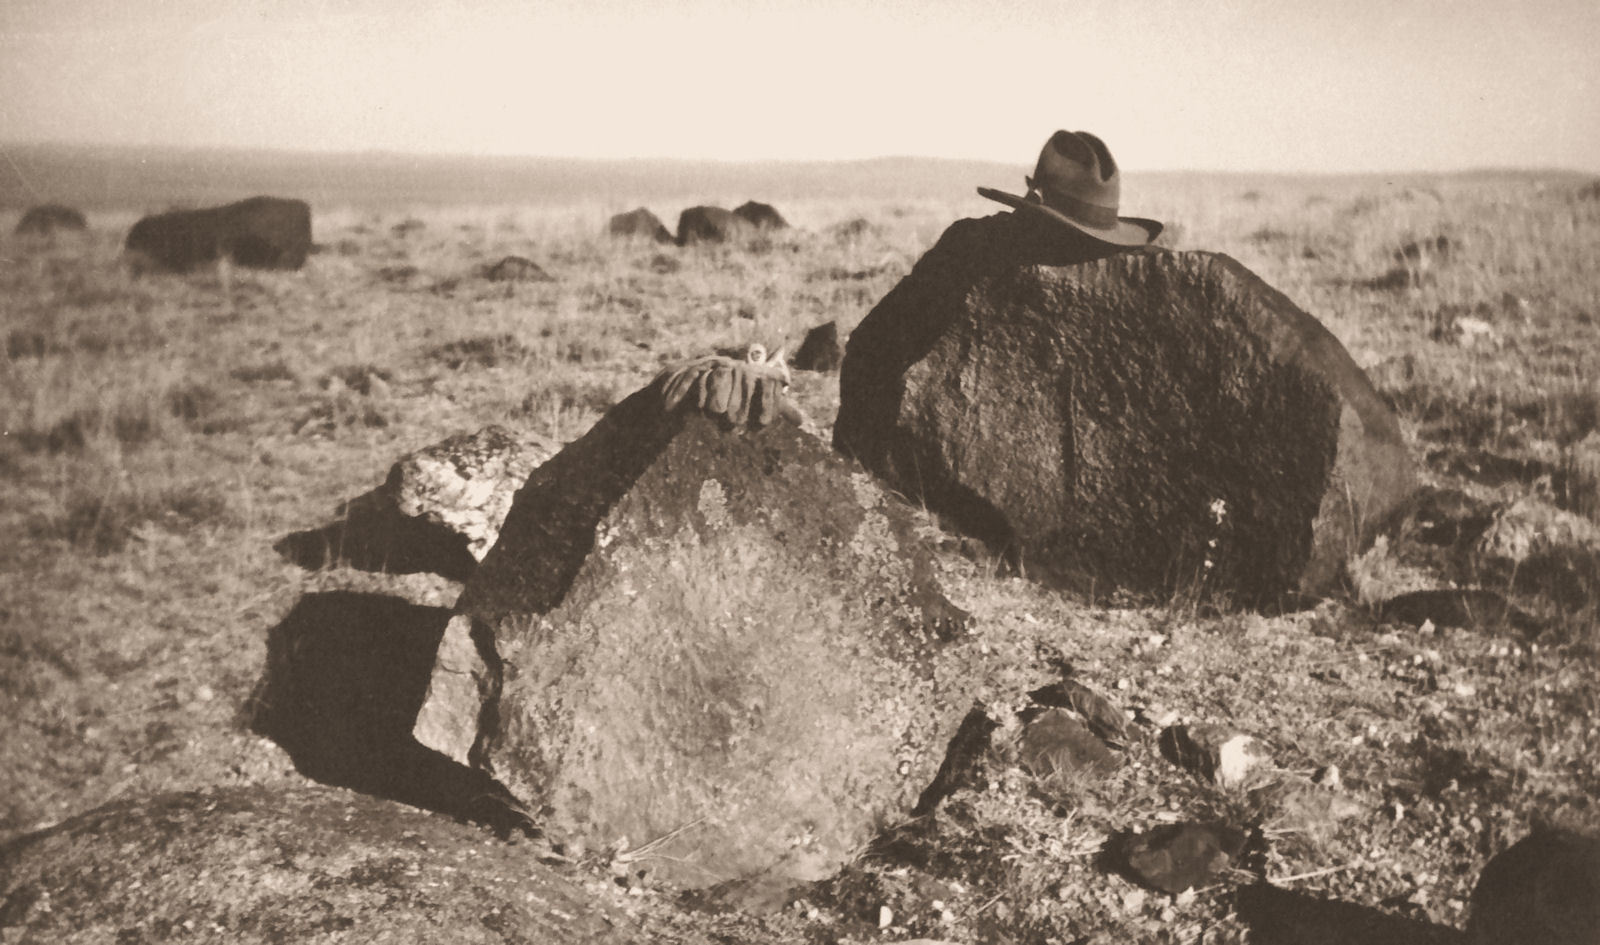 A 1,000-pound boulder of apple-green jade near Crooks Mountain. Photo taken in 1944 by Bert Rhoads; from the David J. Love Collection, WSGS files.